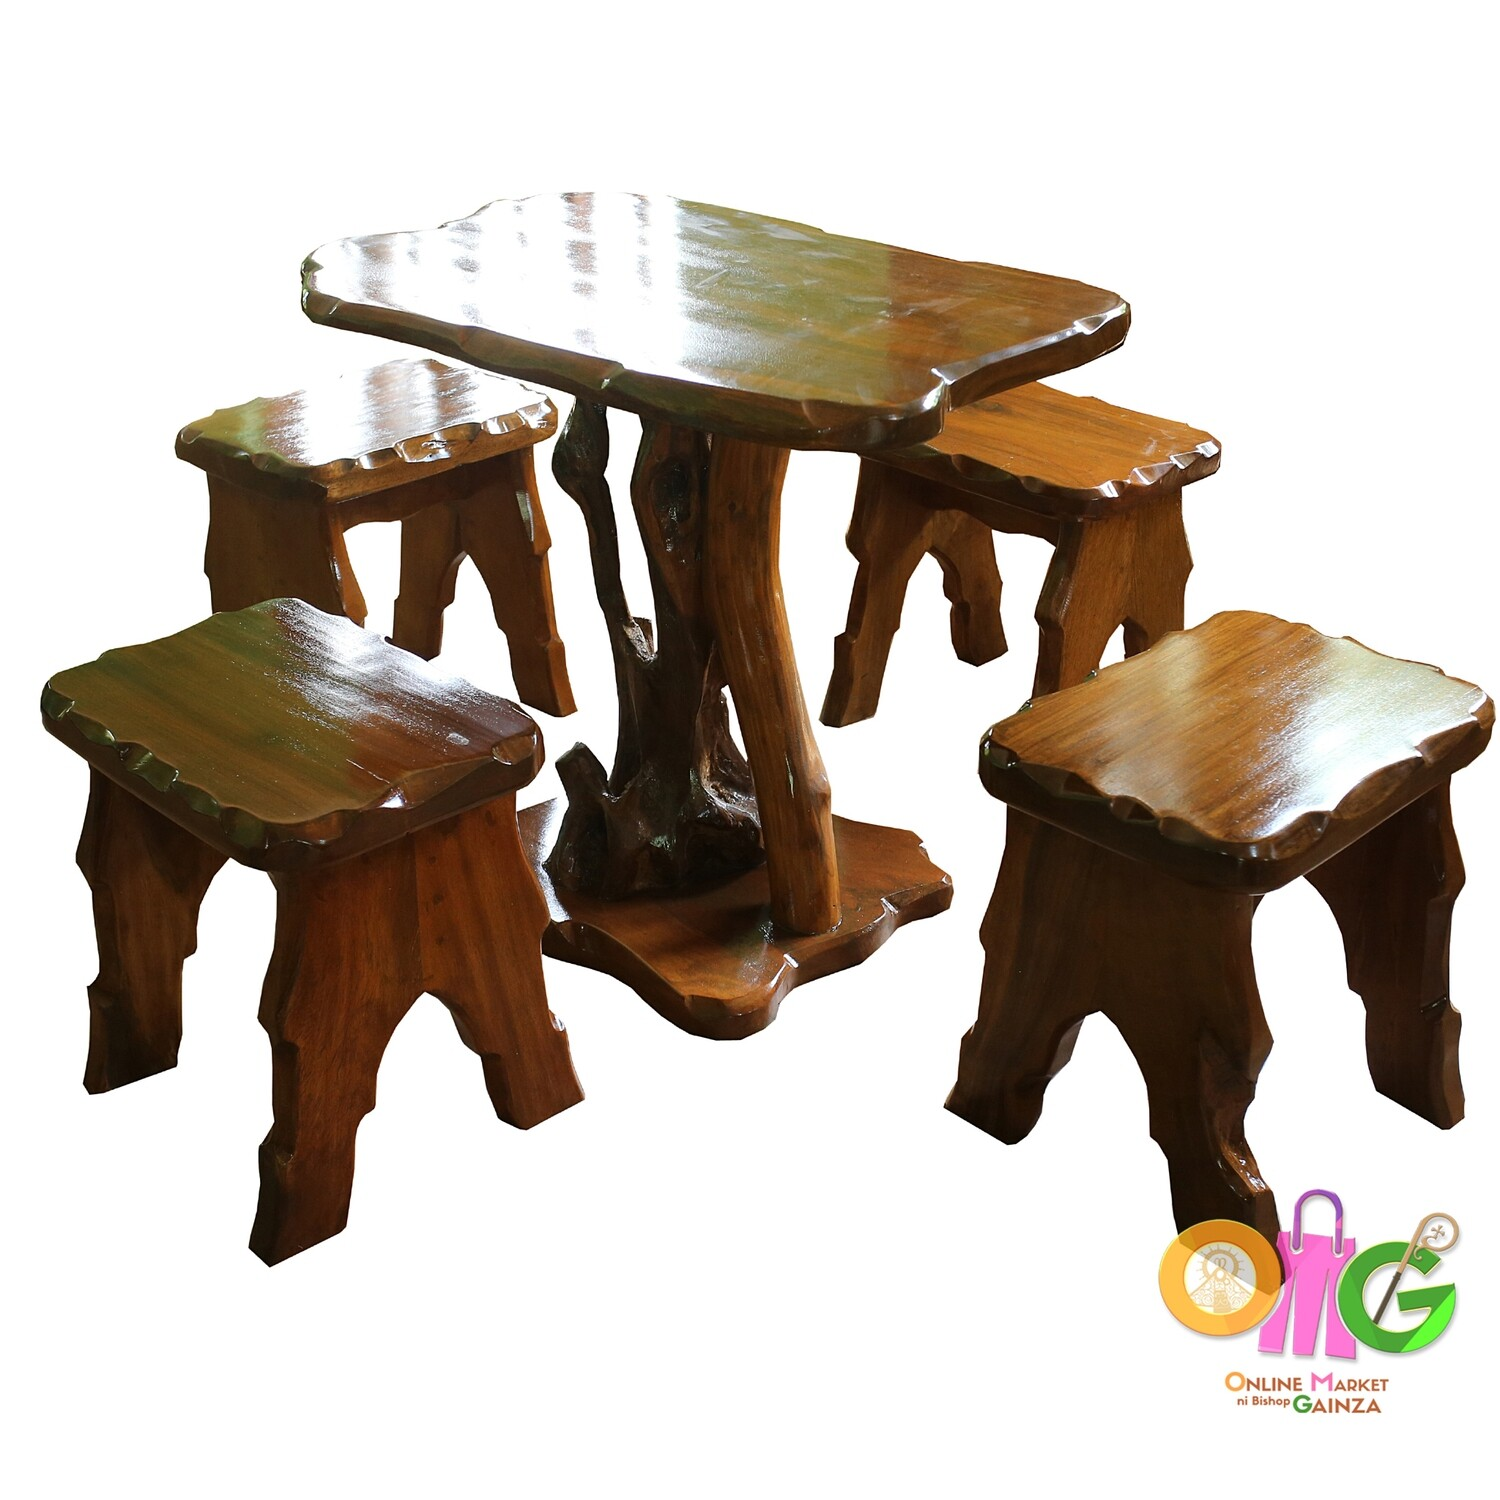 Crazy Cut Woodcraft - Coffee Table with 4 Chairs